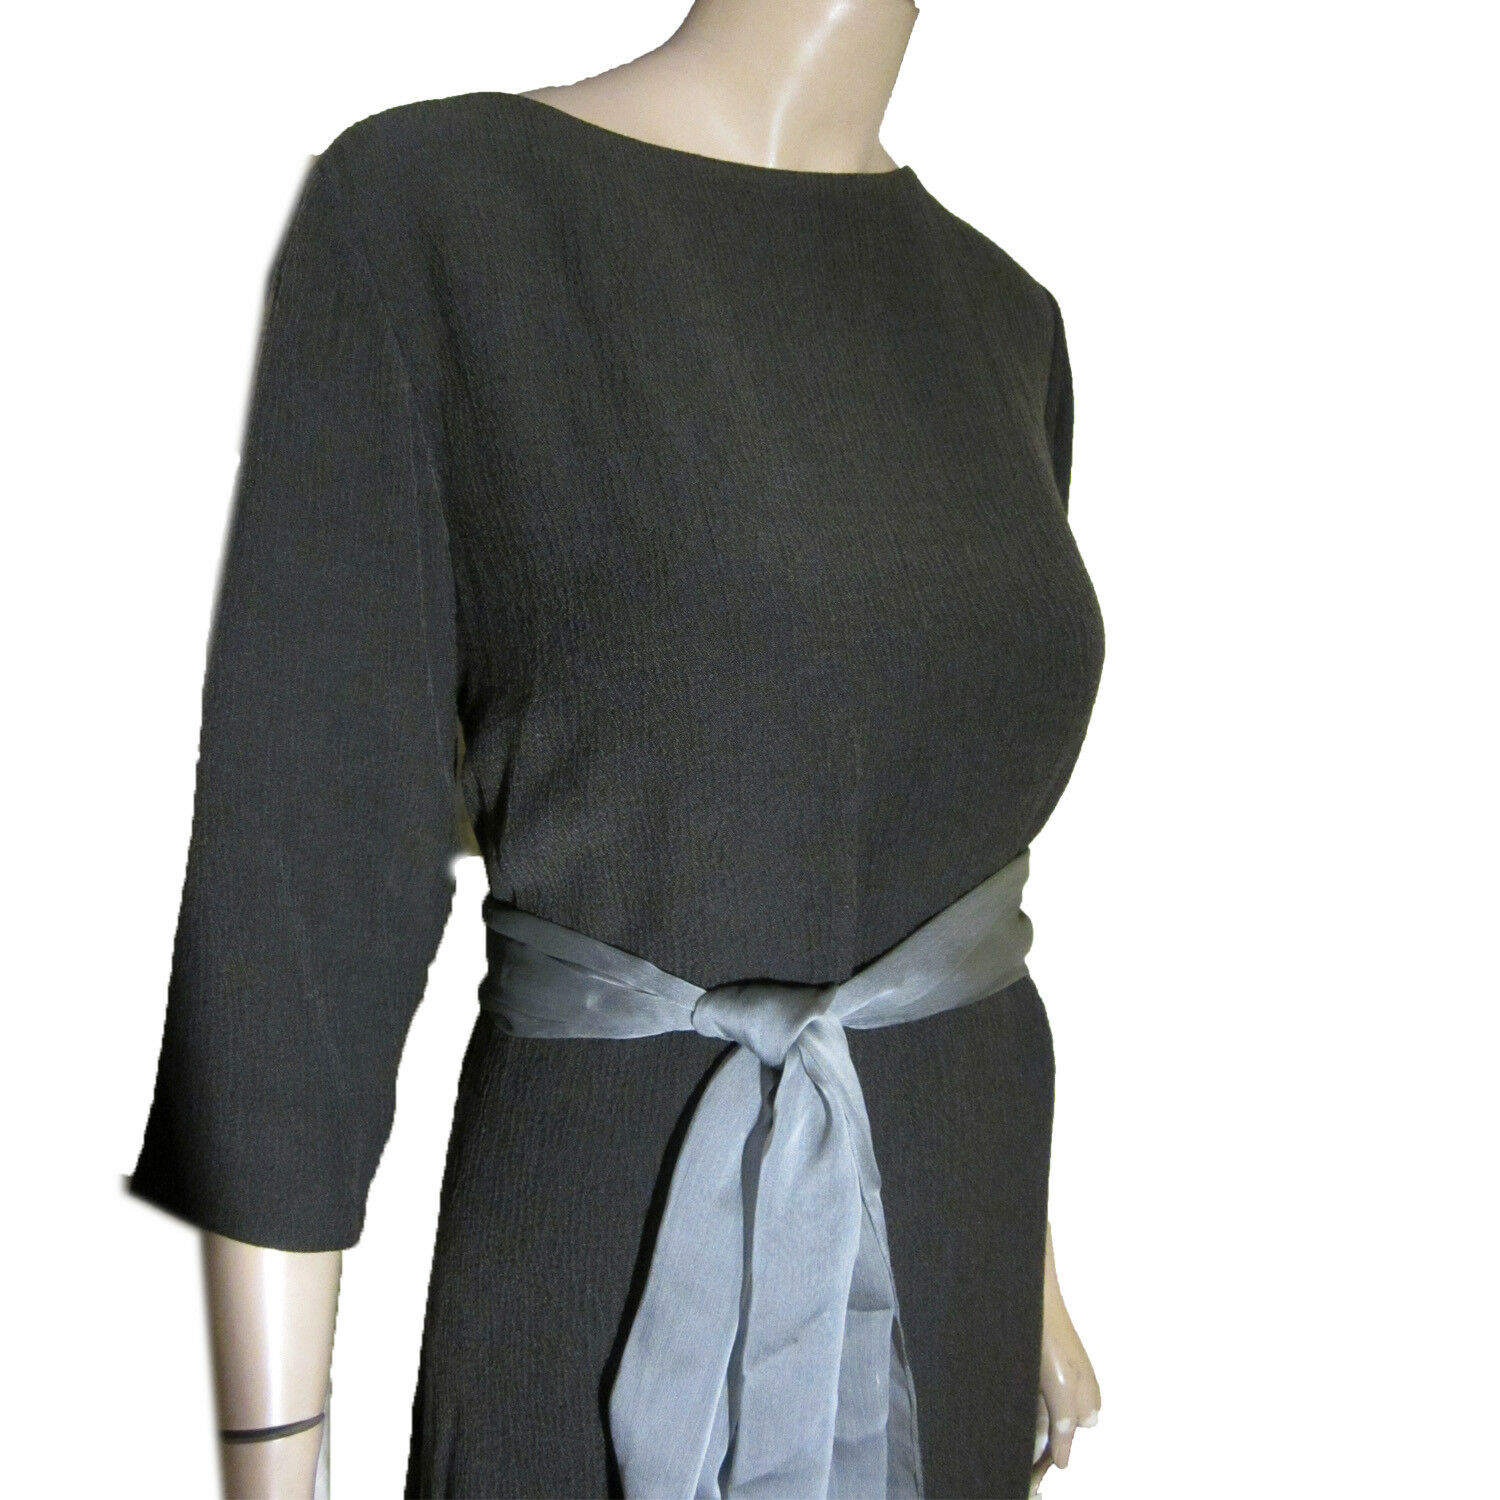 New WOOL BLEND Maxi Dress Shift 14W in Charcoal Textured Fabric by FINITY